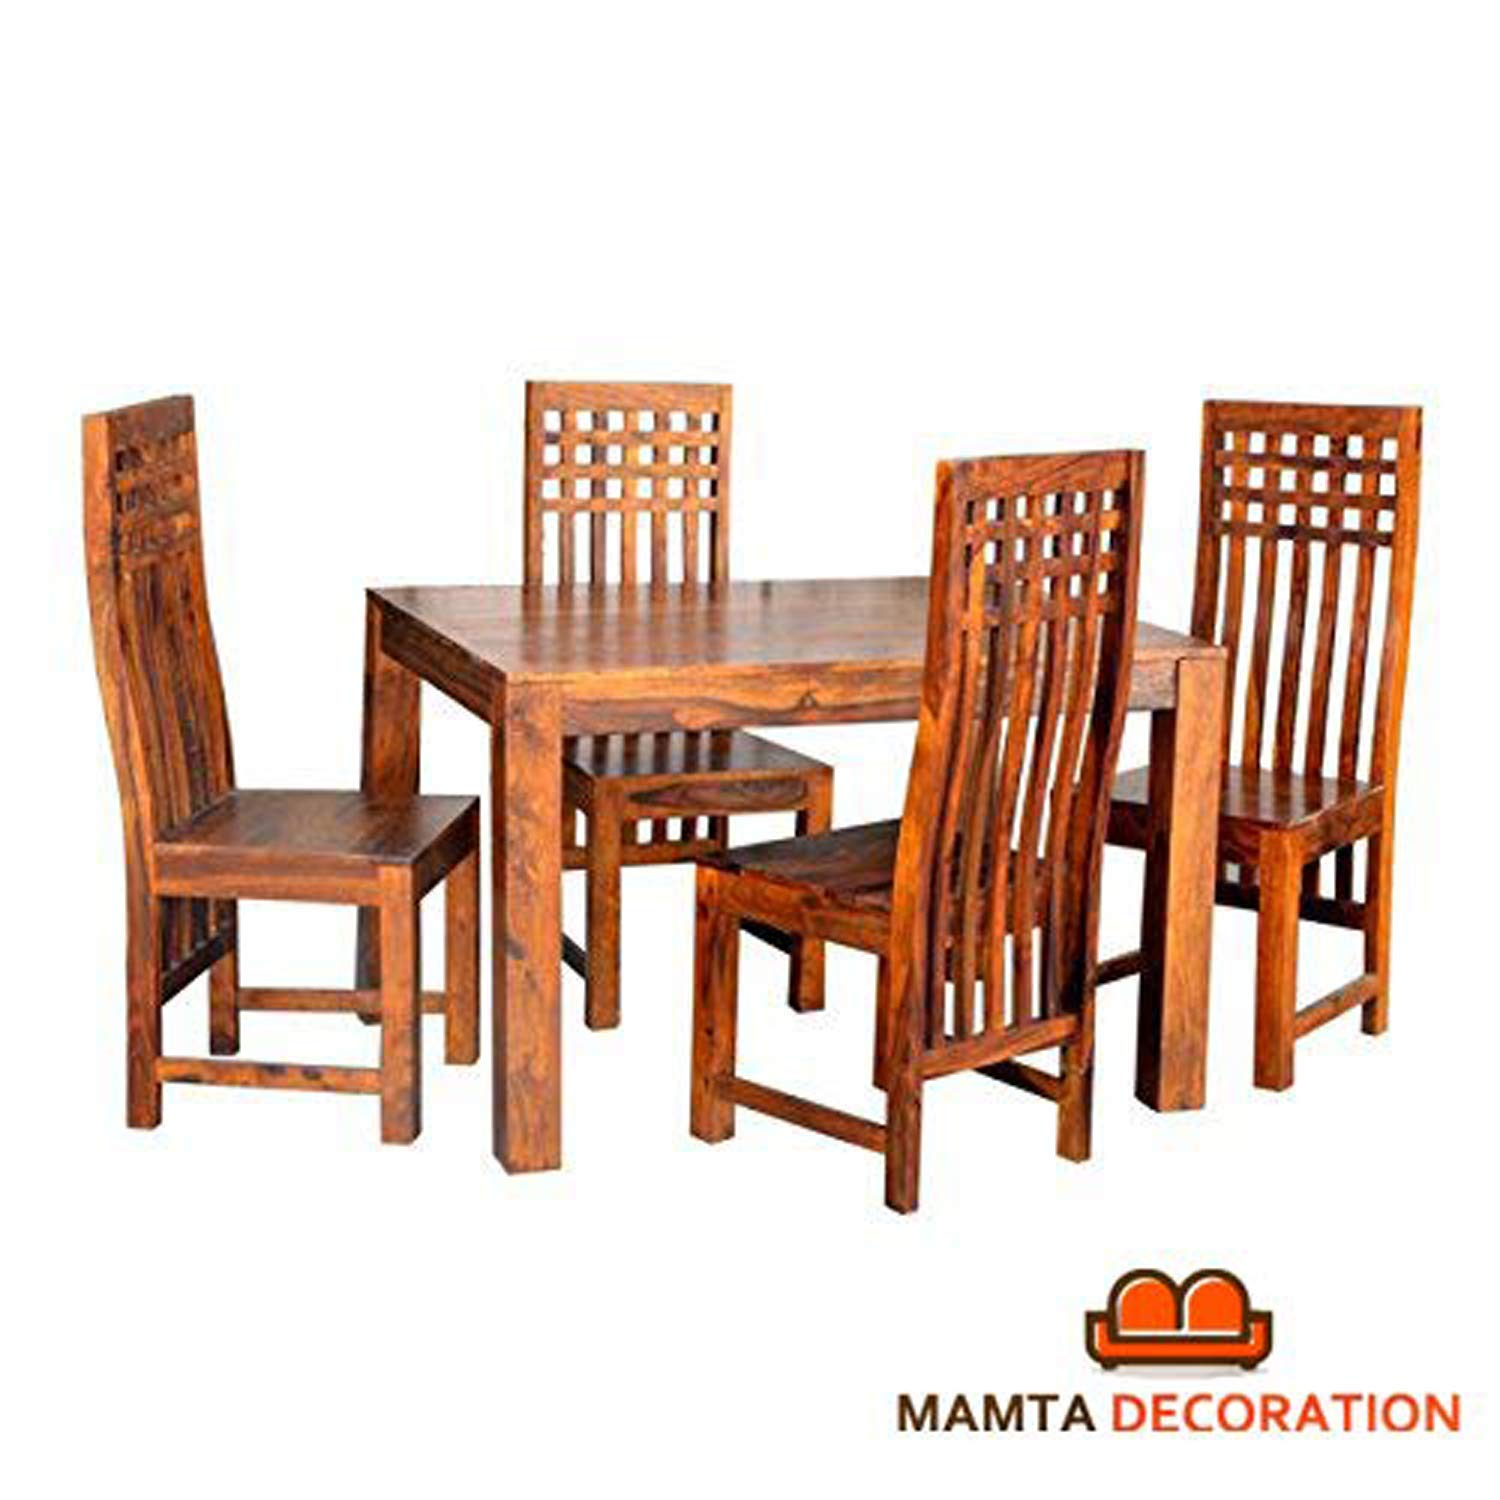 Mamta decoration sheesham wood wooden dining table with 4 curvy chairs home and living room teak finish brown amazon in electronics